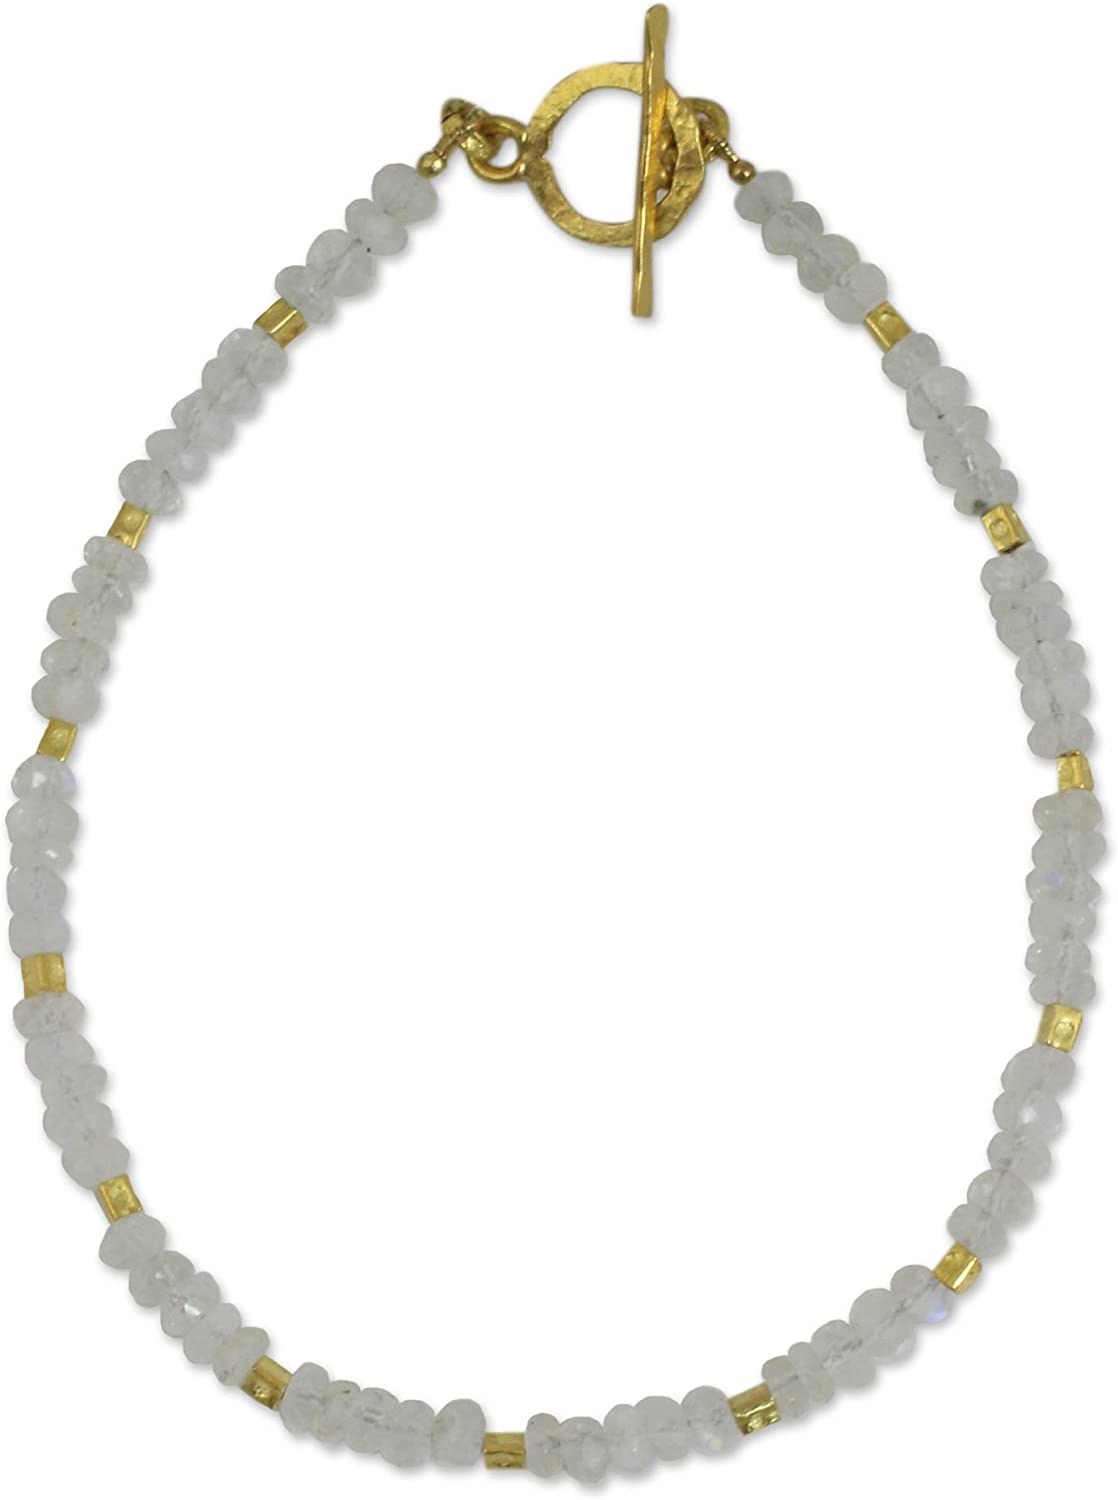 "NOVICA Rainbow Moonstone and 24k Yellow Gold Plated Beaded Bracelet, 7.25"" 'Simply Fascinating'"